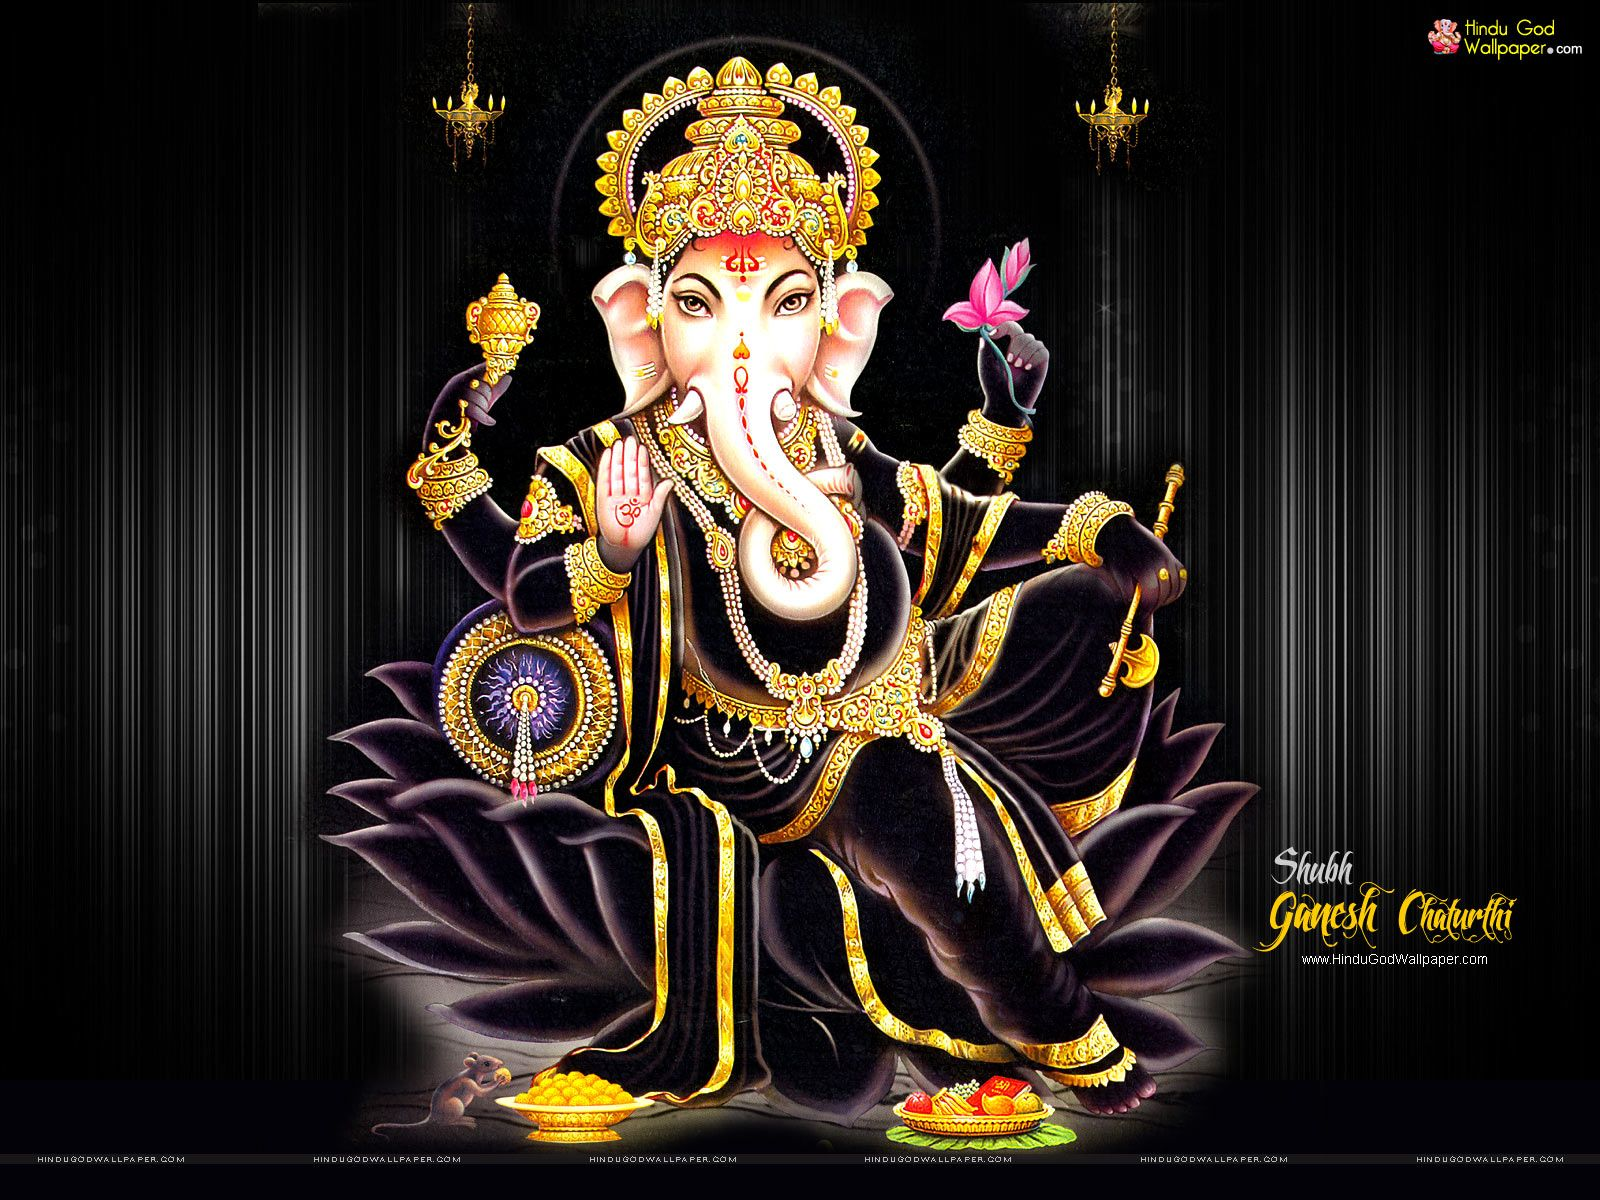 Hd wallpaper ganesh - Happy Ganesh Chaturthi Hd Wallpapers Download Ganesh Chaturthi Wallpapers Pinterest Happy Ganesh Chaturthi Ganesh And Wallpaper Downloads